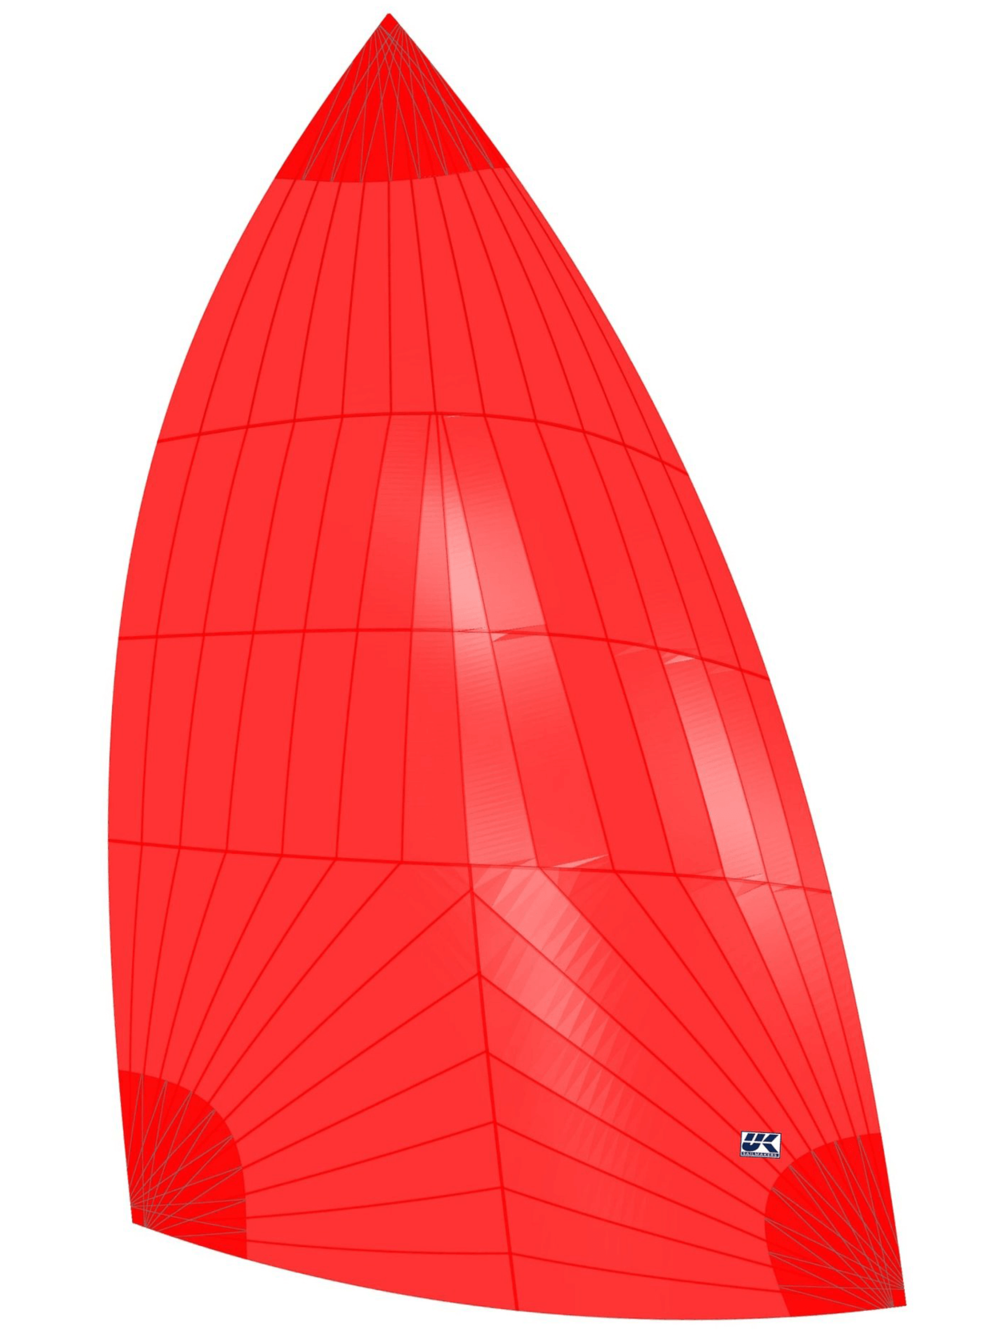 UK Sailmakers Cruising Spinnaker Code Zero Point Five